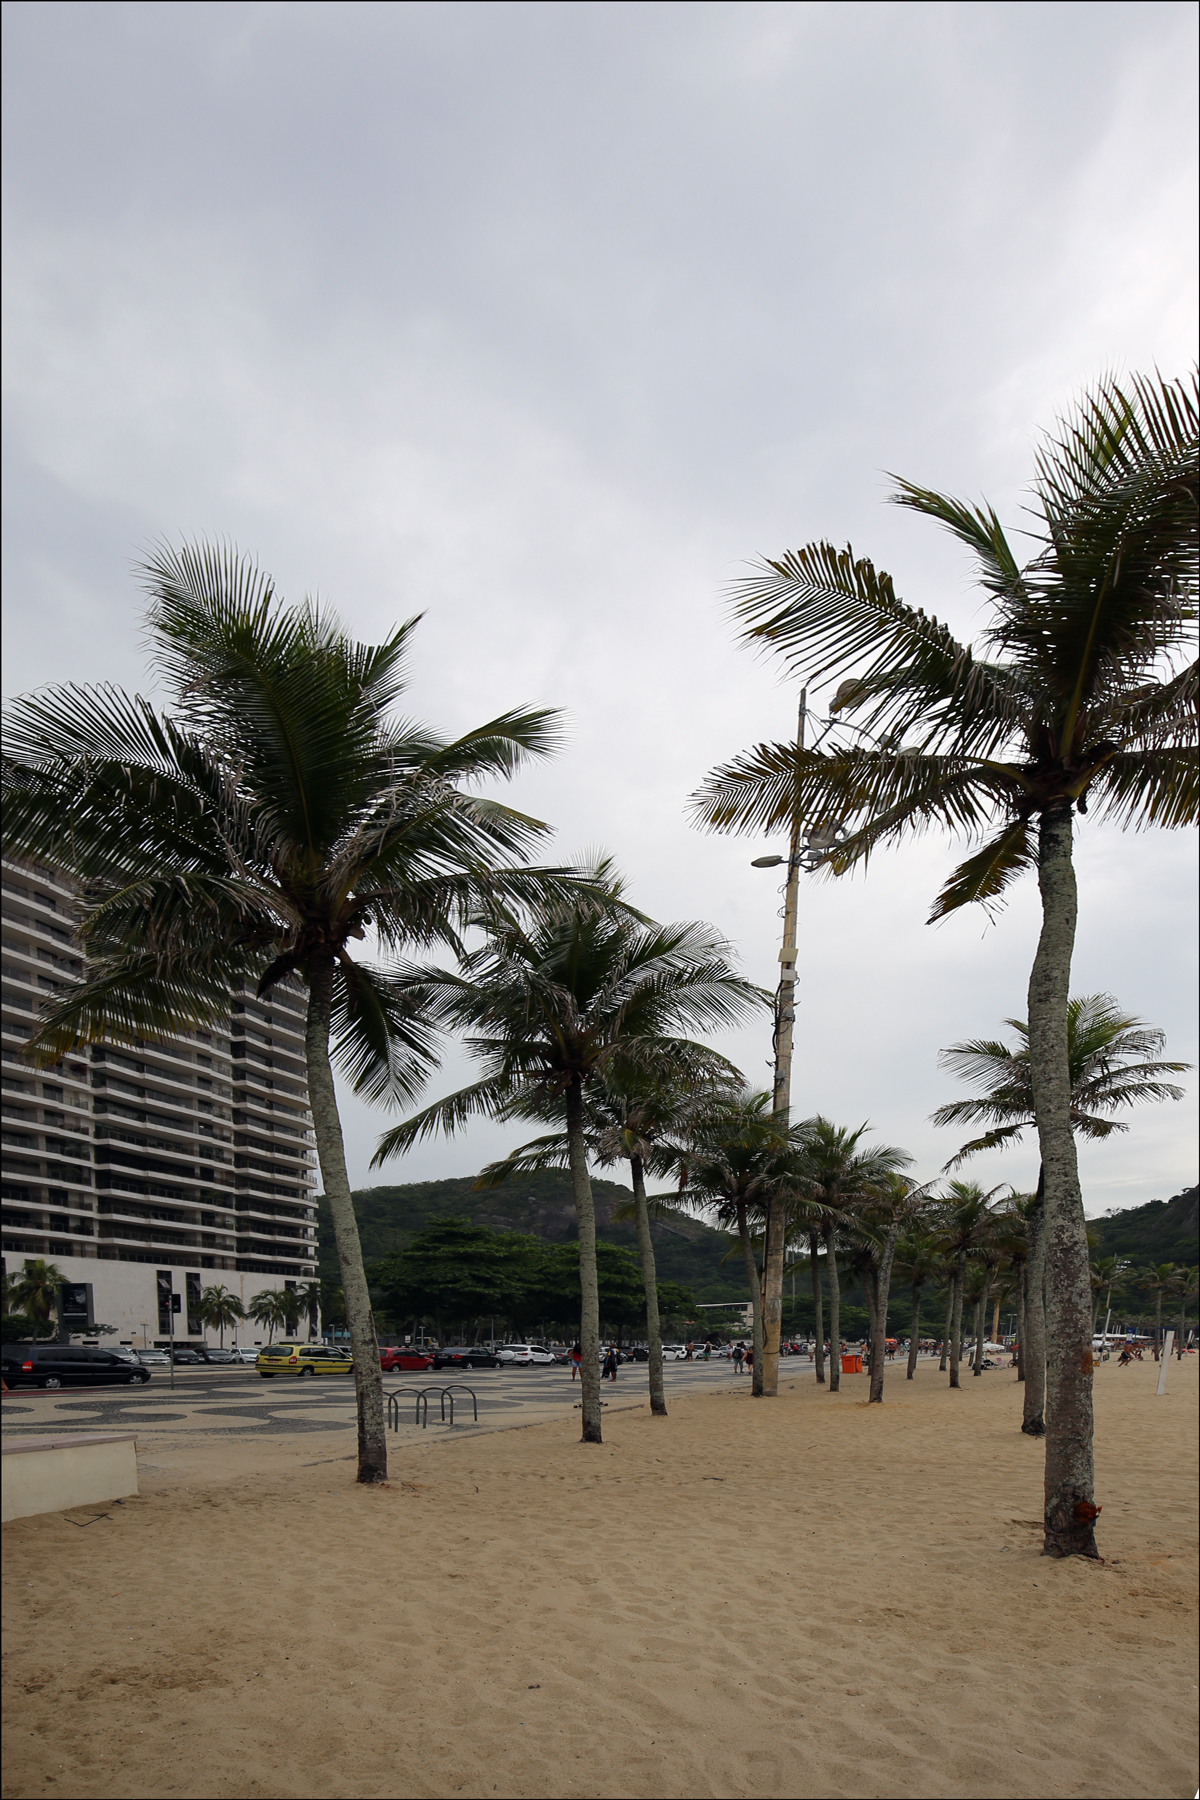 Palms at Copacabana Beach